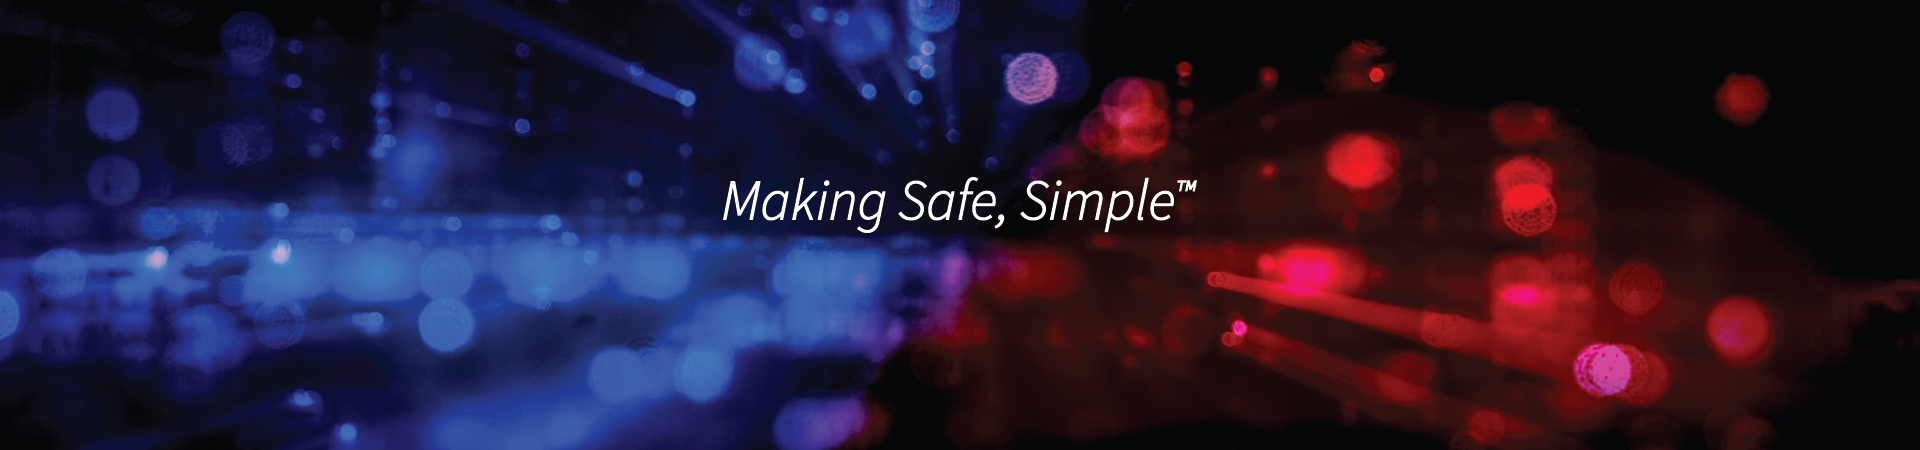 Welcome to the Making Safe, Simple blog